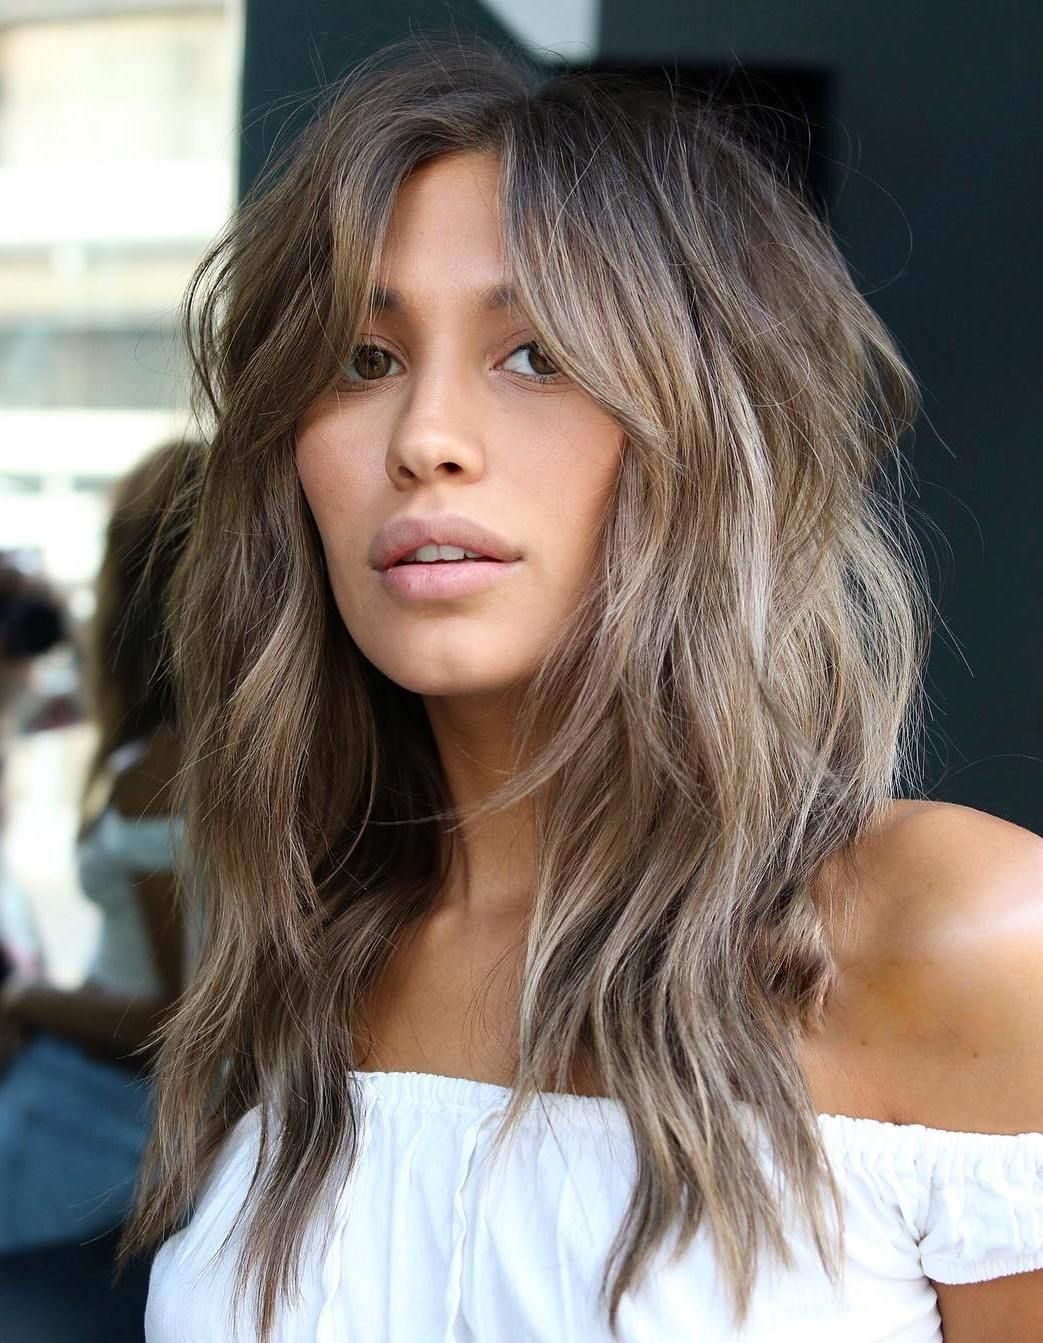 The Modern Shag Hairstyle Is Beautifully Casual And Elegant At The Same Time Curtain Bangs Beautifu In 2020 Long Shag Haircut Long Hair With Bangs Modern Shag Haircut